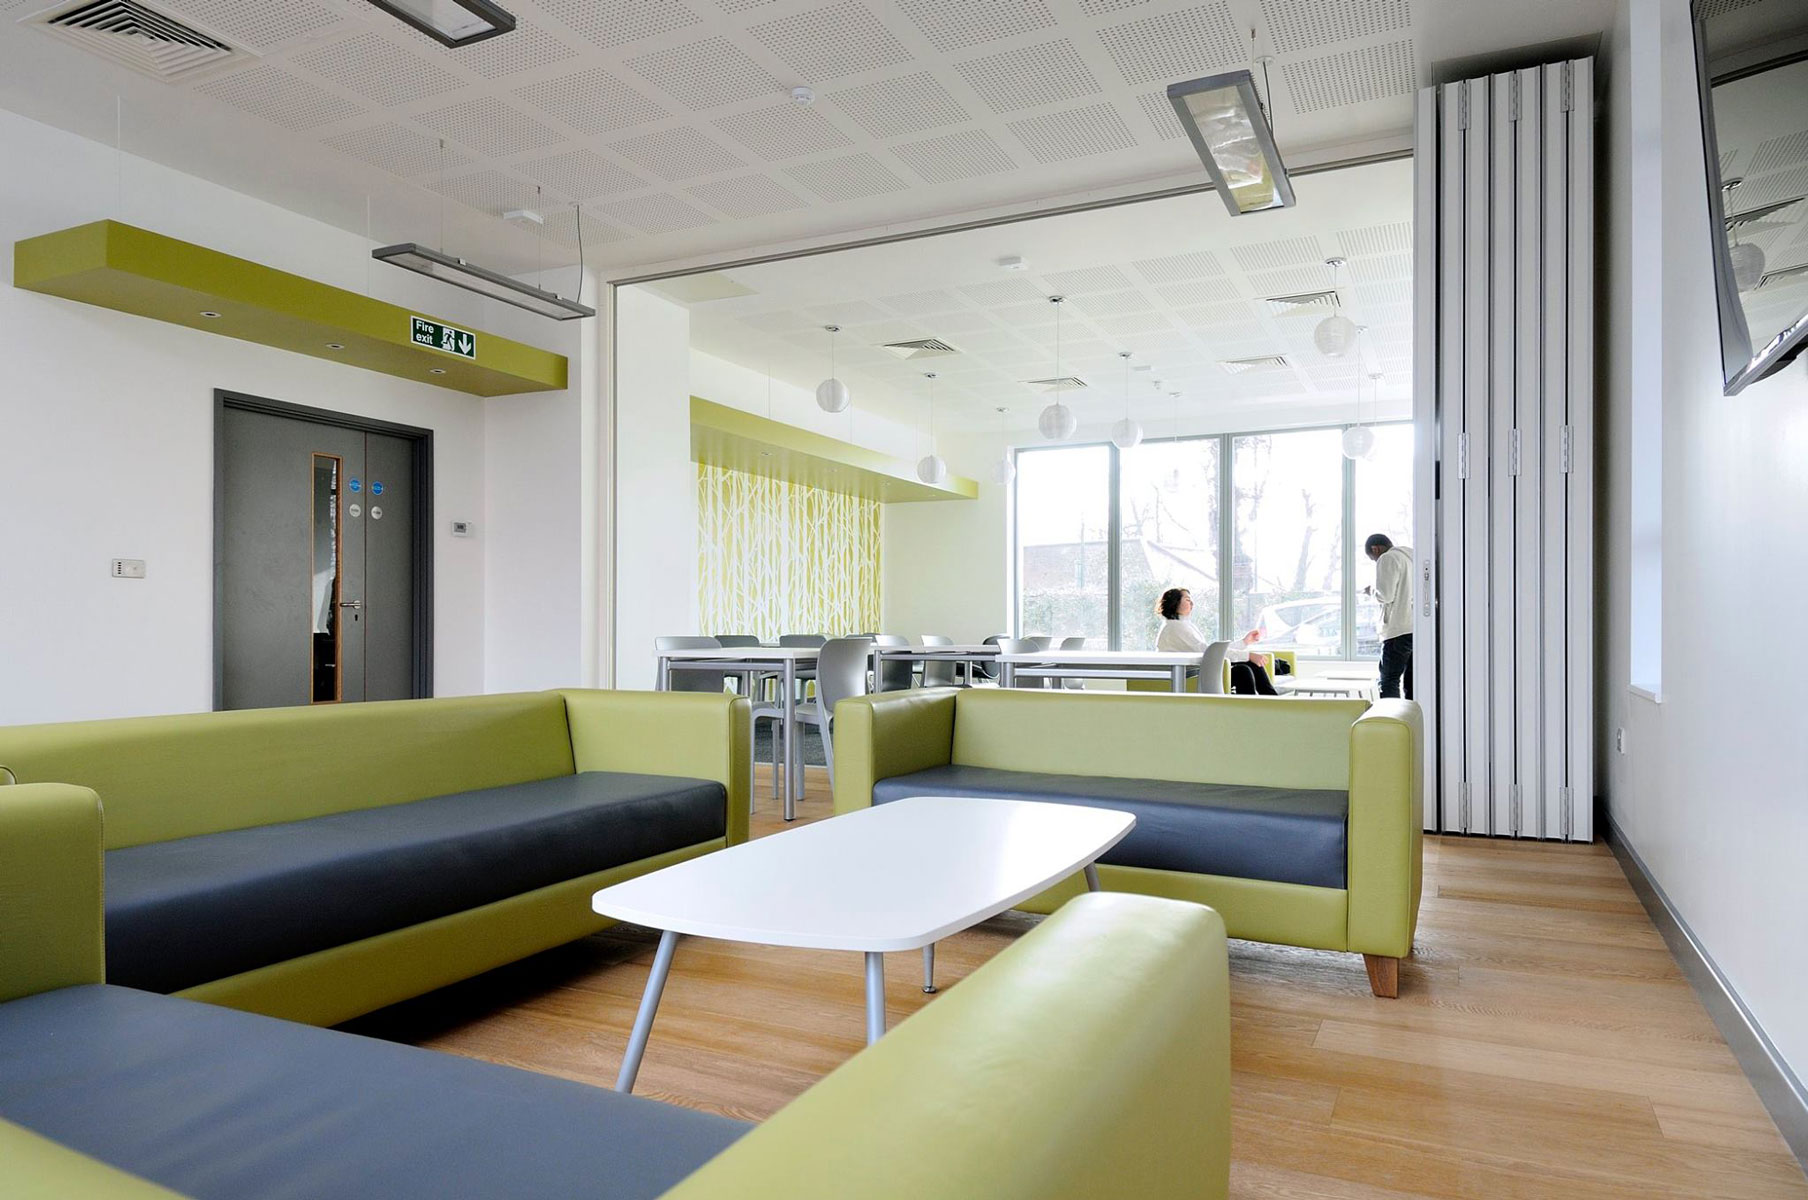 Student accommodation virtual tour kingston university for House interior design event